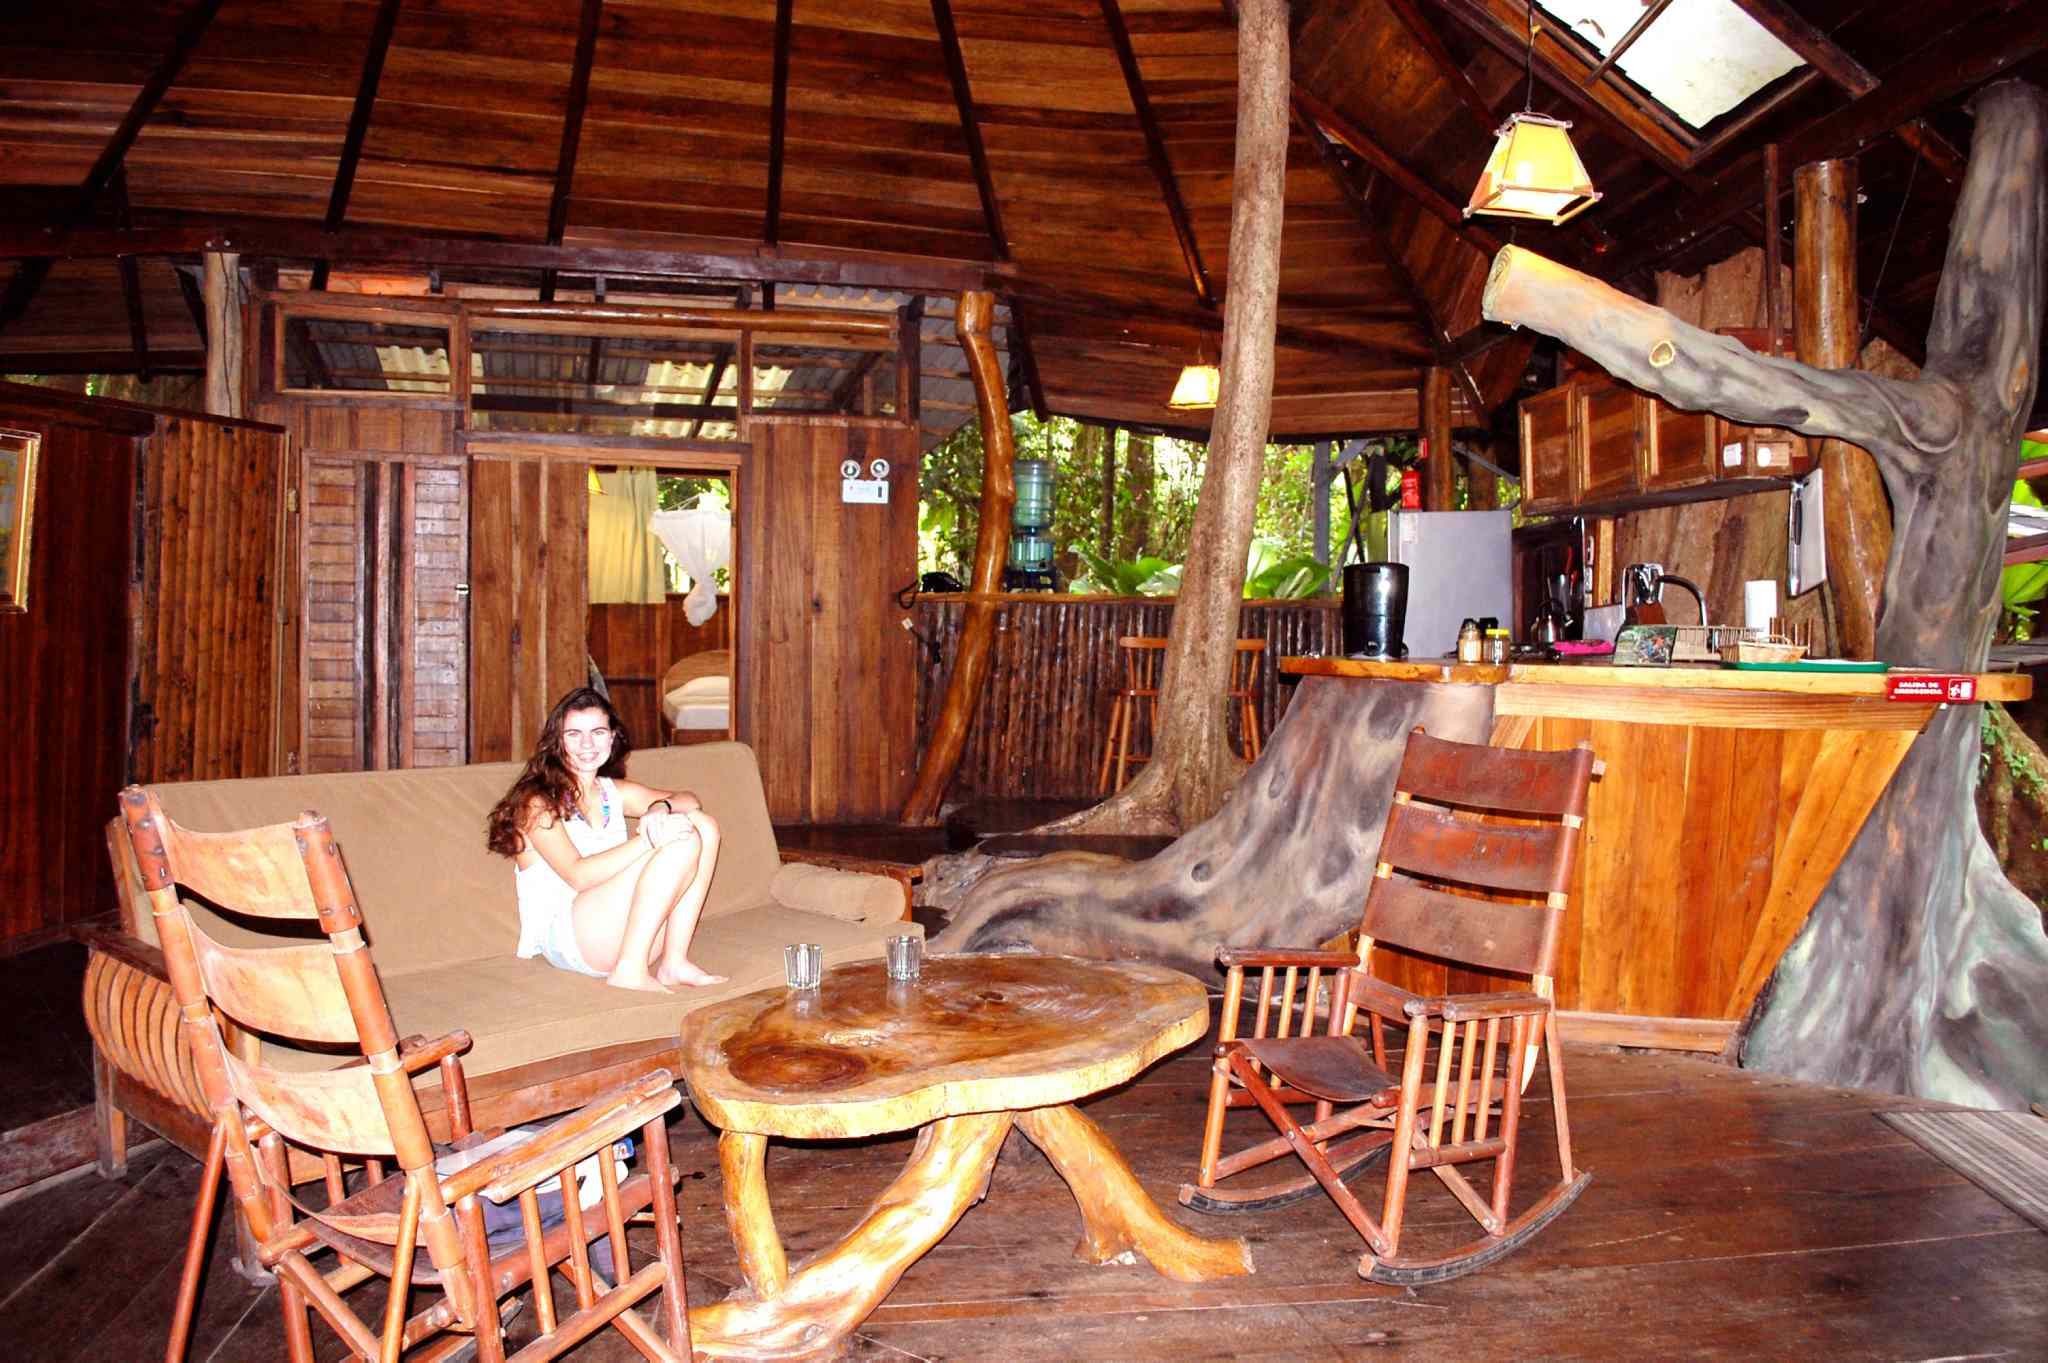 The main floor of Tree House Lodge features an open-air living room and kitchen with a live Sangrillo tree growing out of the floor and disappearing through the ceiling.